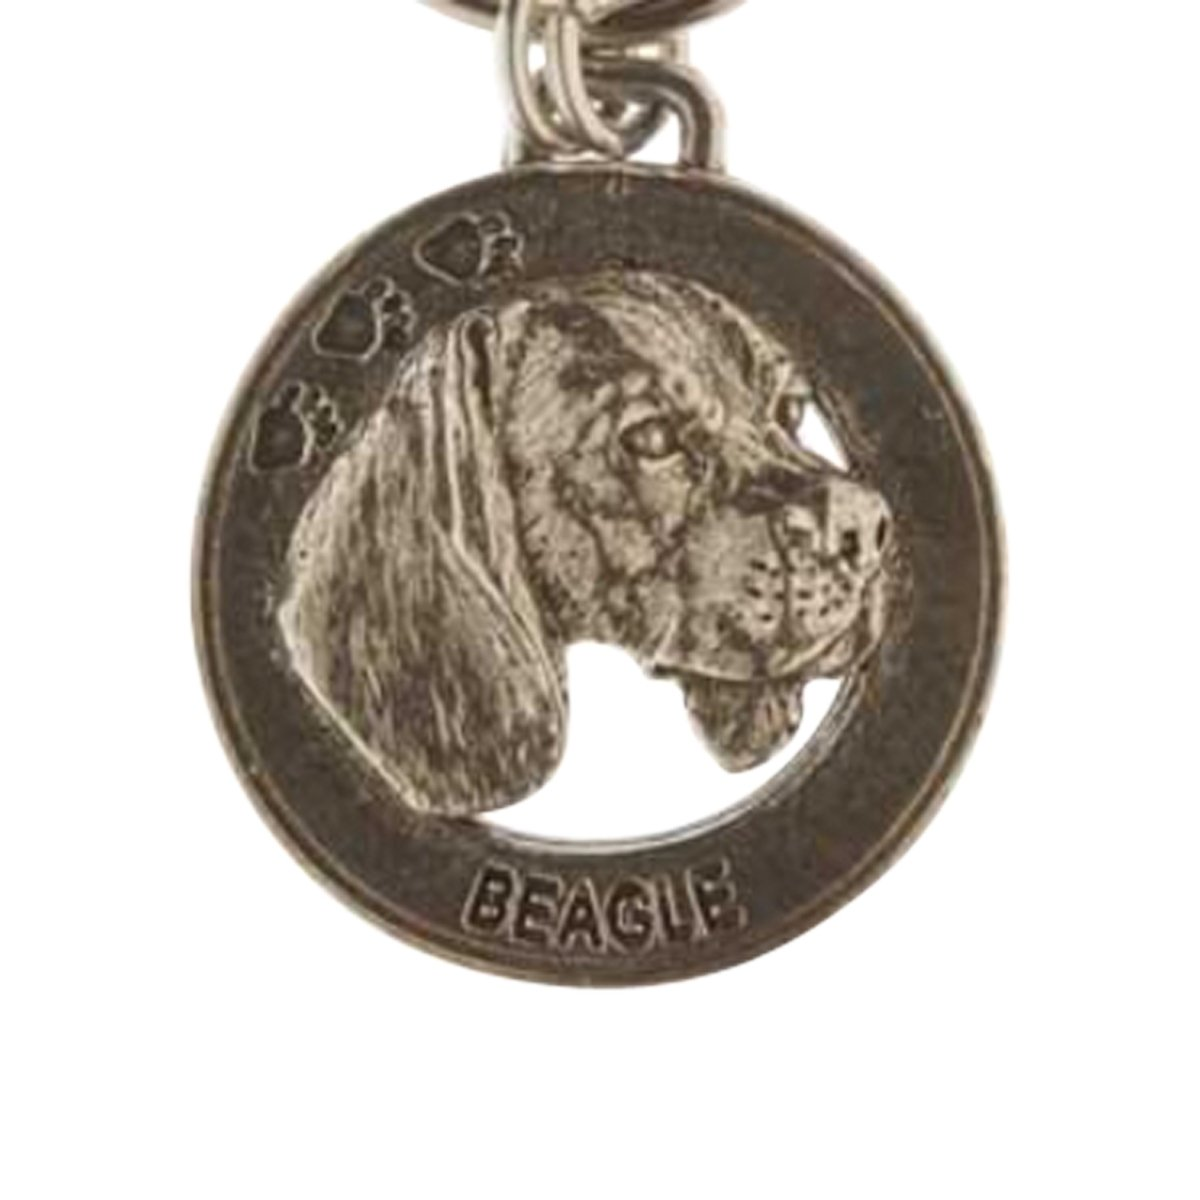 Creative Pewter Designs, Pewter Beagle Key Chain, Antiqued Finish, DK022